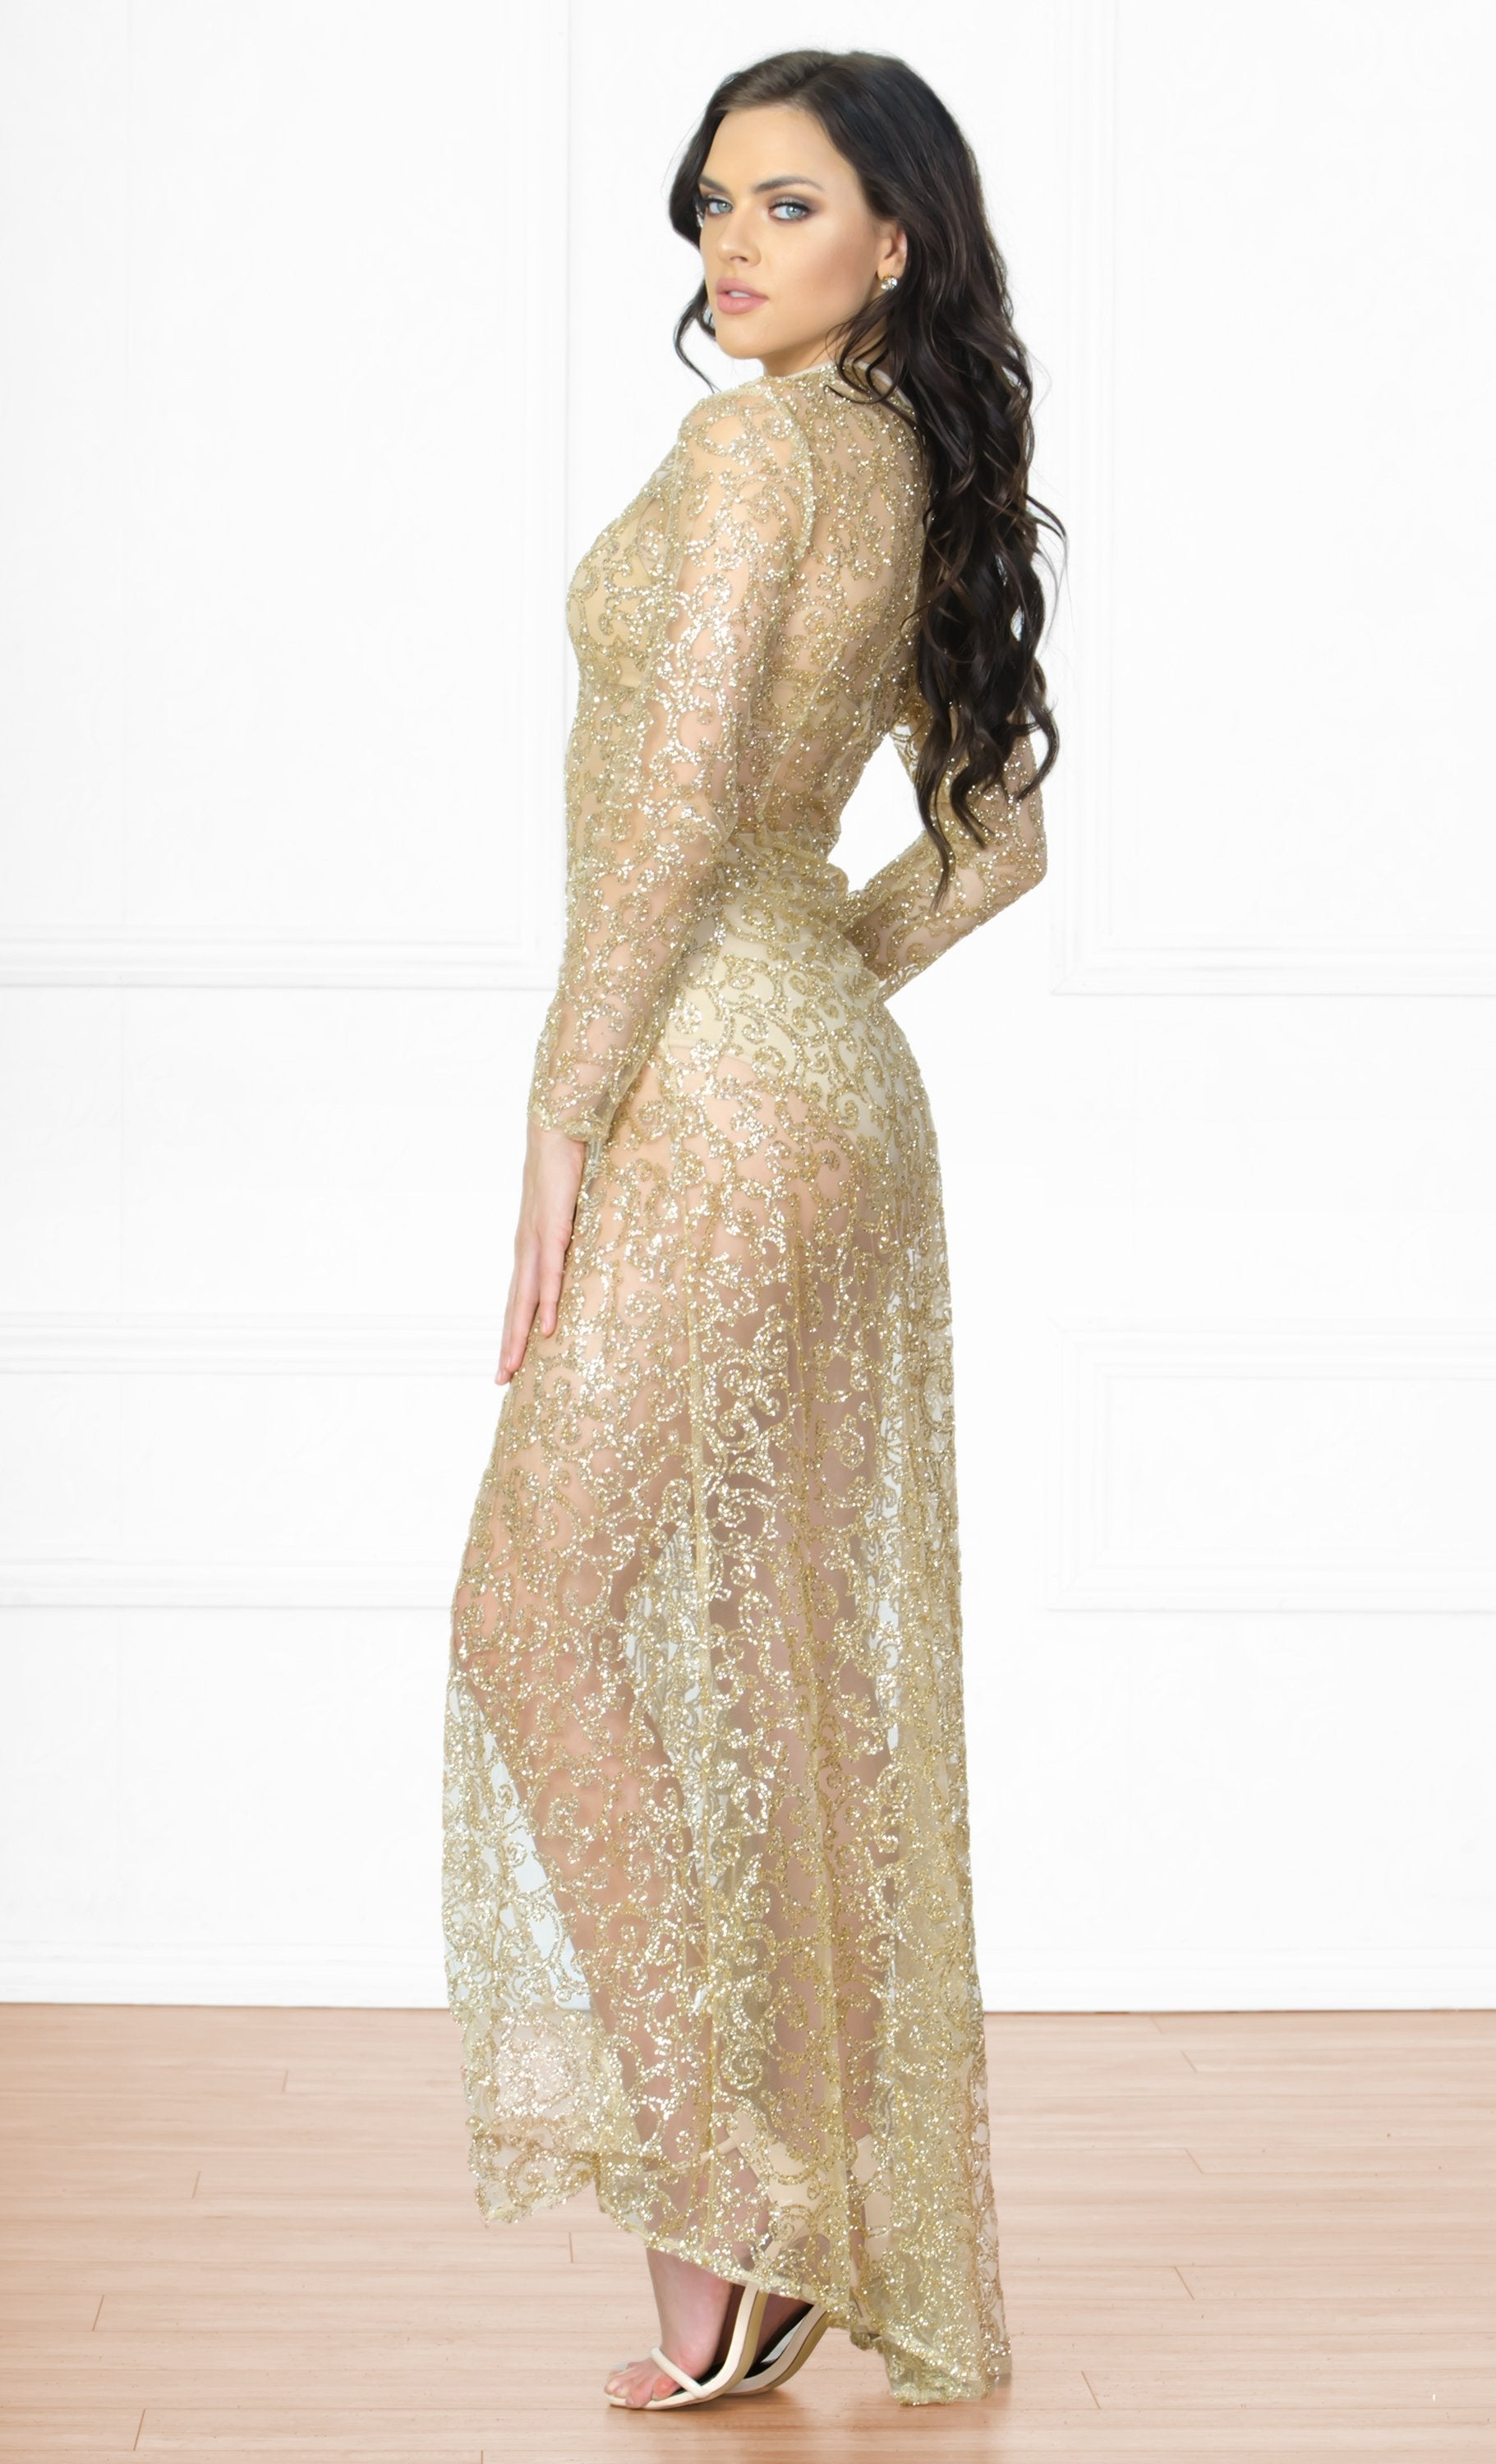 Indie XO Adoring Fan Gold Sequin Glitter Swirl Long Sleeve Mock Neck Double Slit Maxi Dress - Sold Out